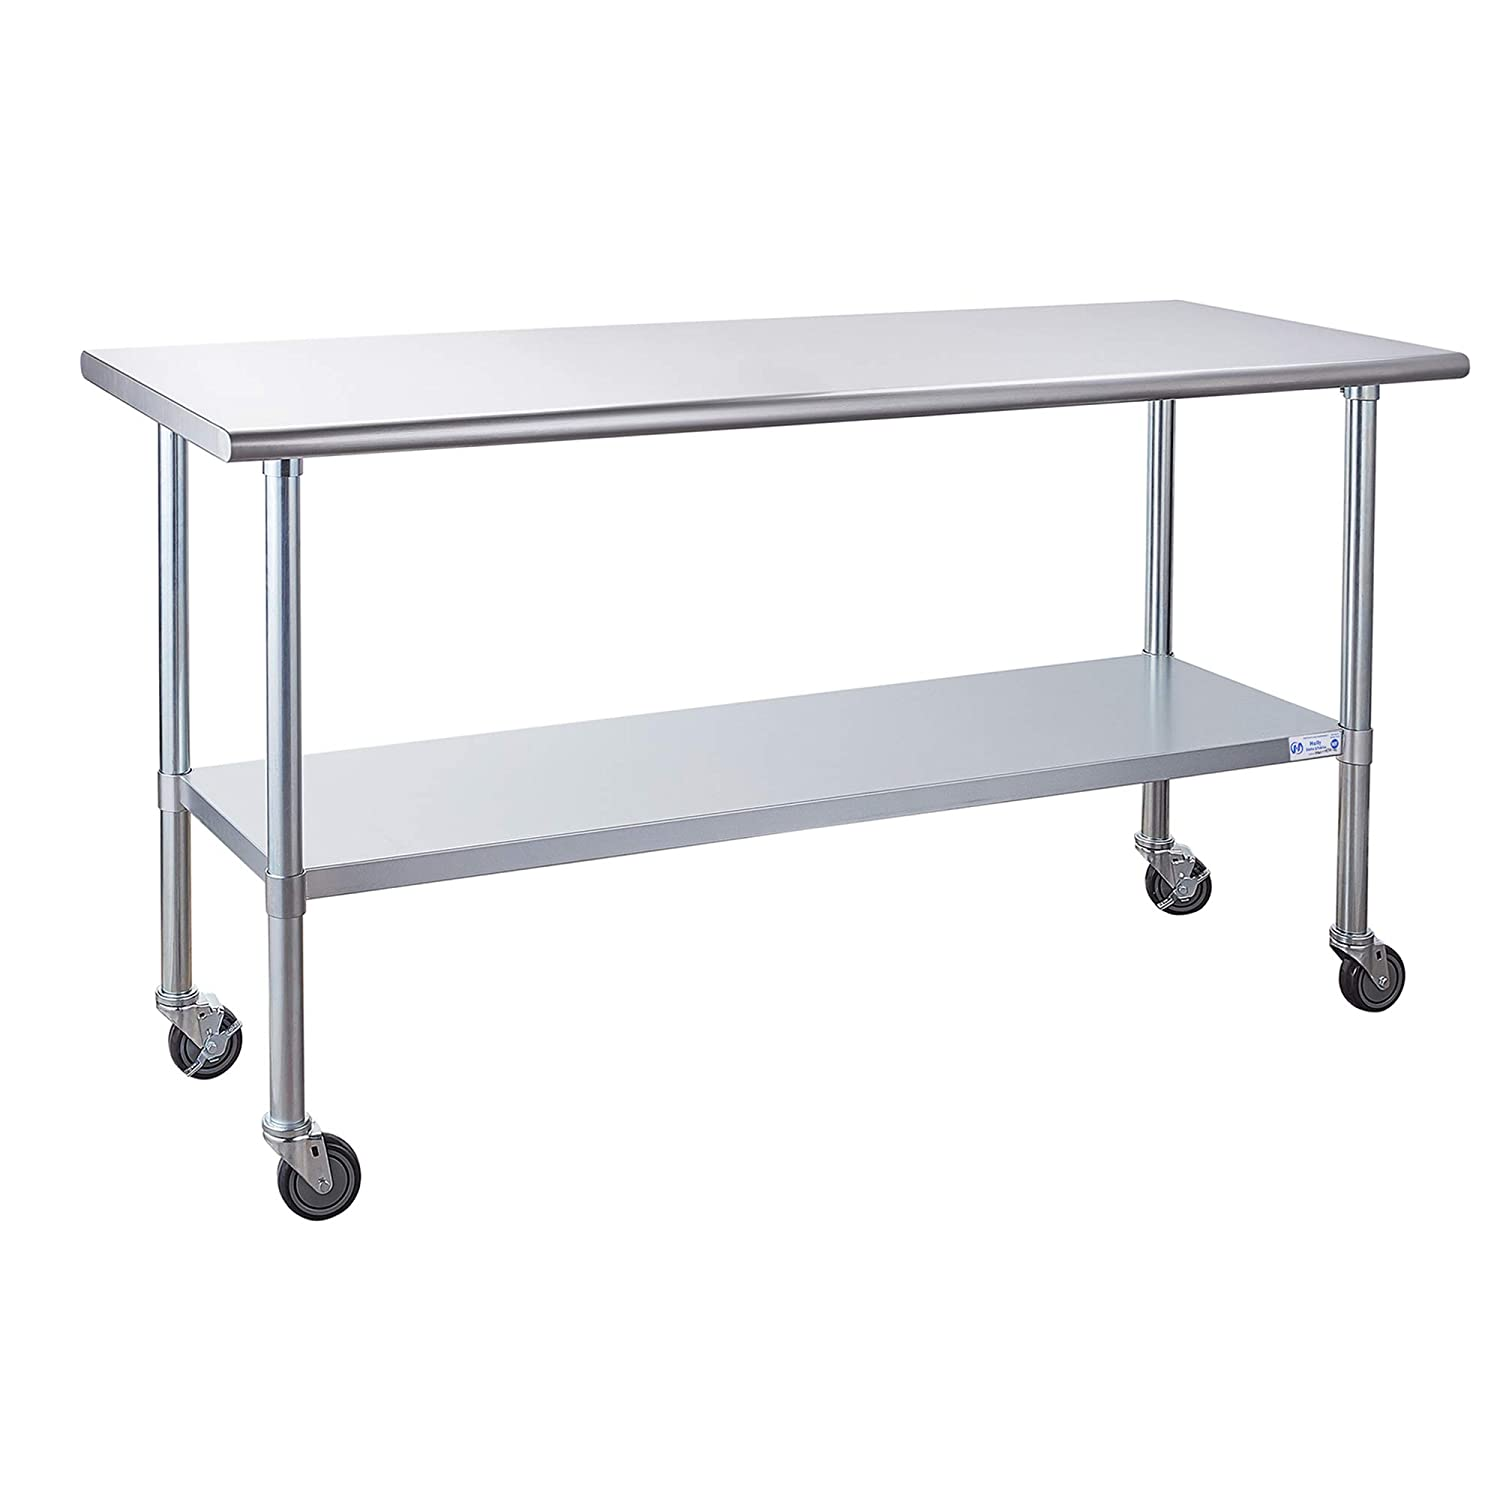 Stainless Steel Table Excellent for Prep Work with Max 58% OFF 24 x 72 Inches Caster